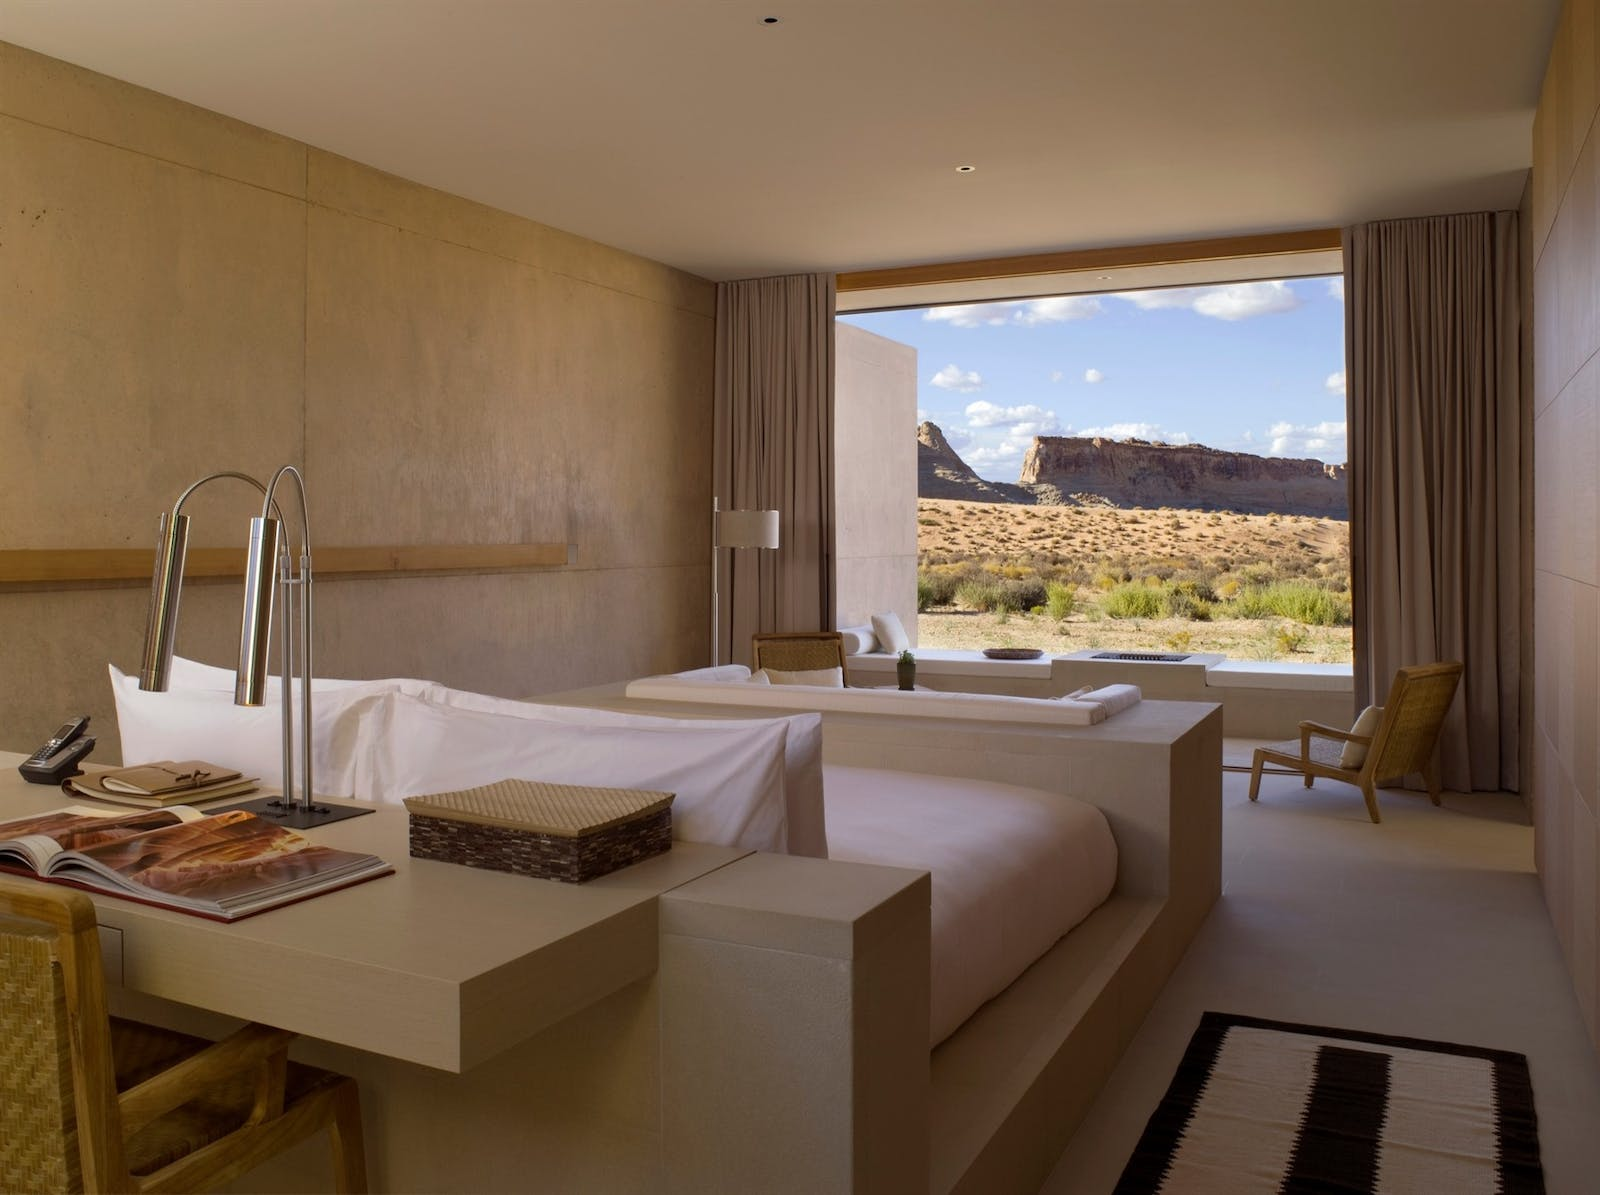 Girijalla Suite at Amangiri, Canyon Point